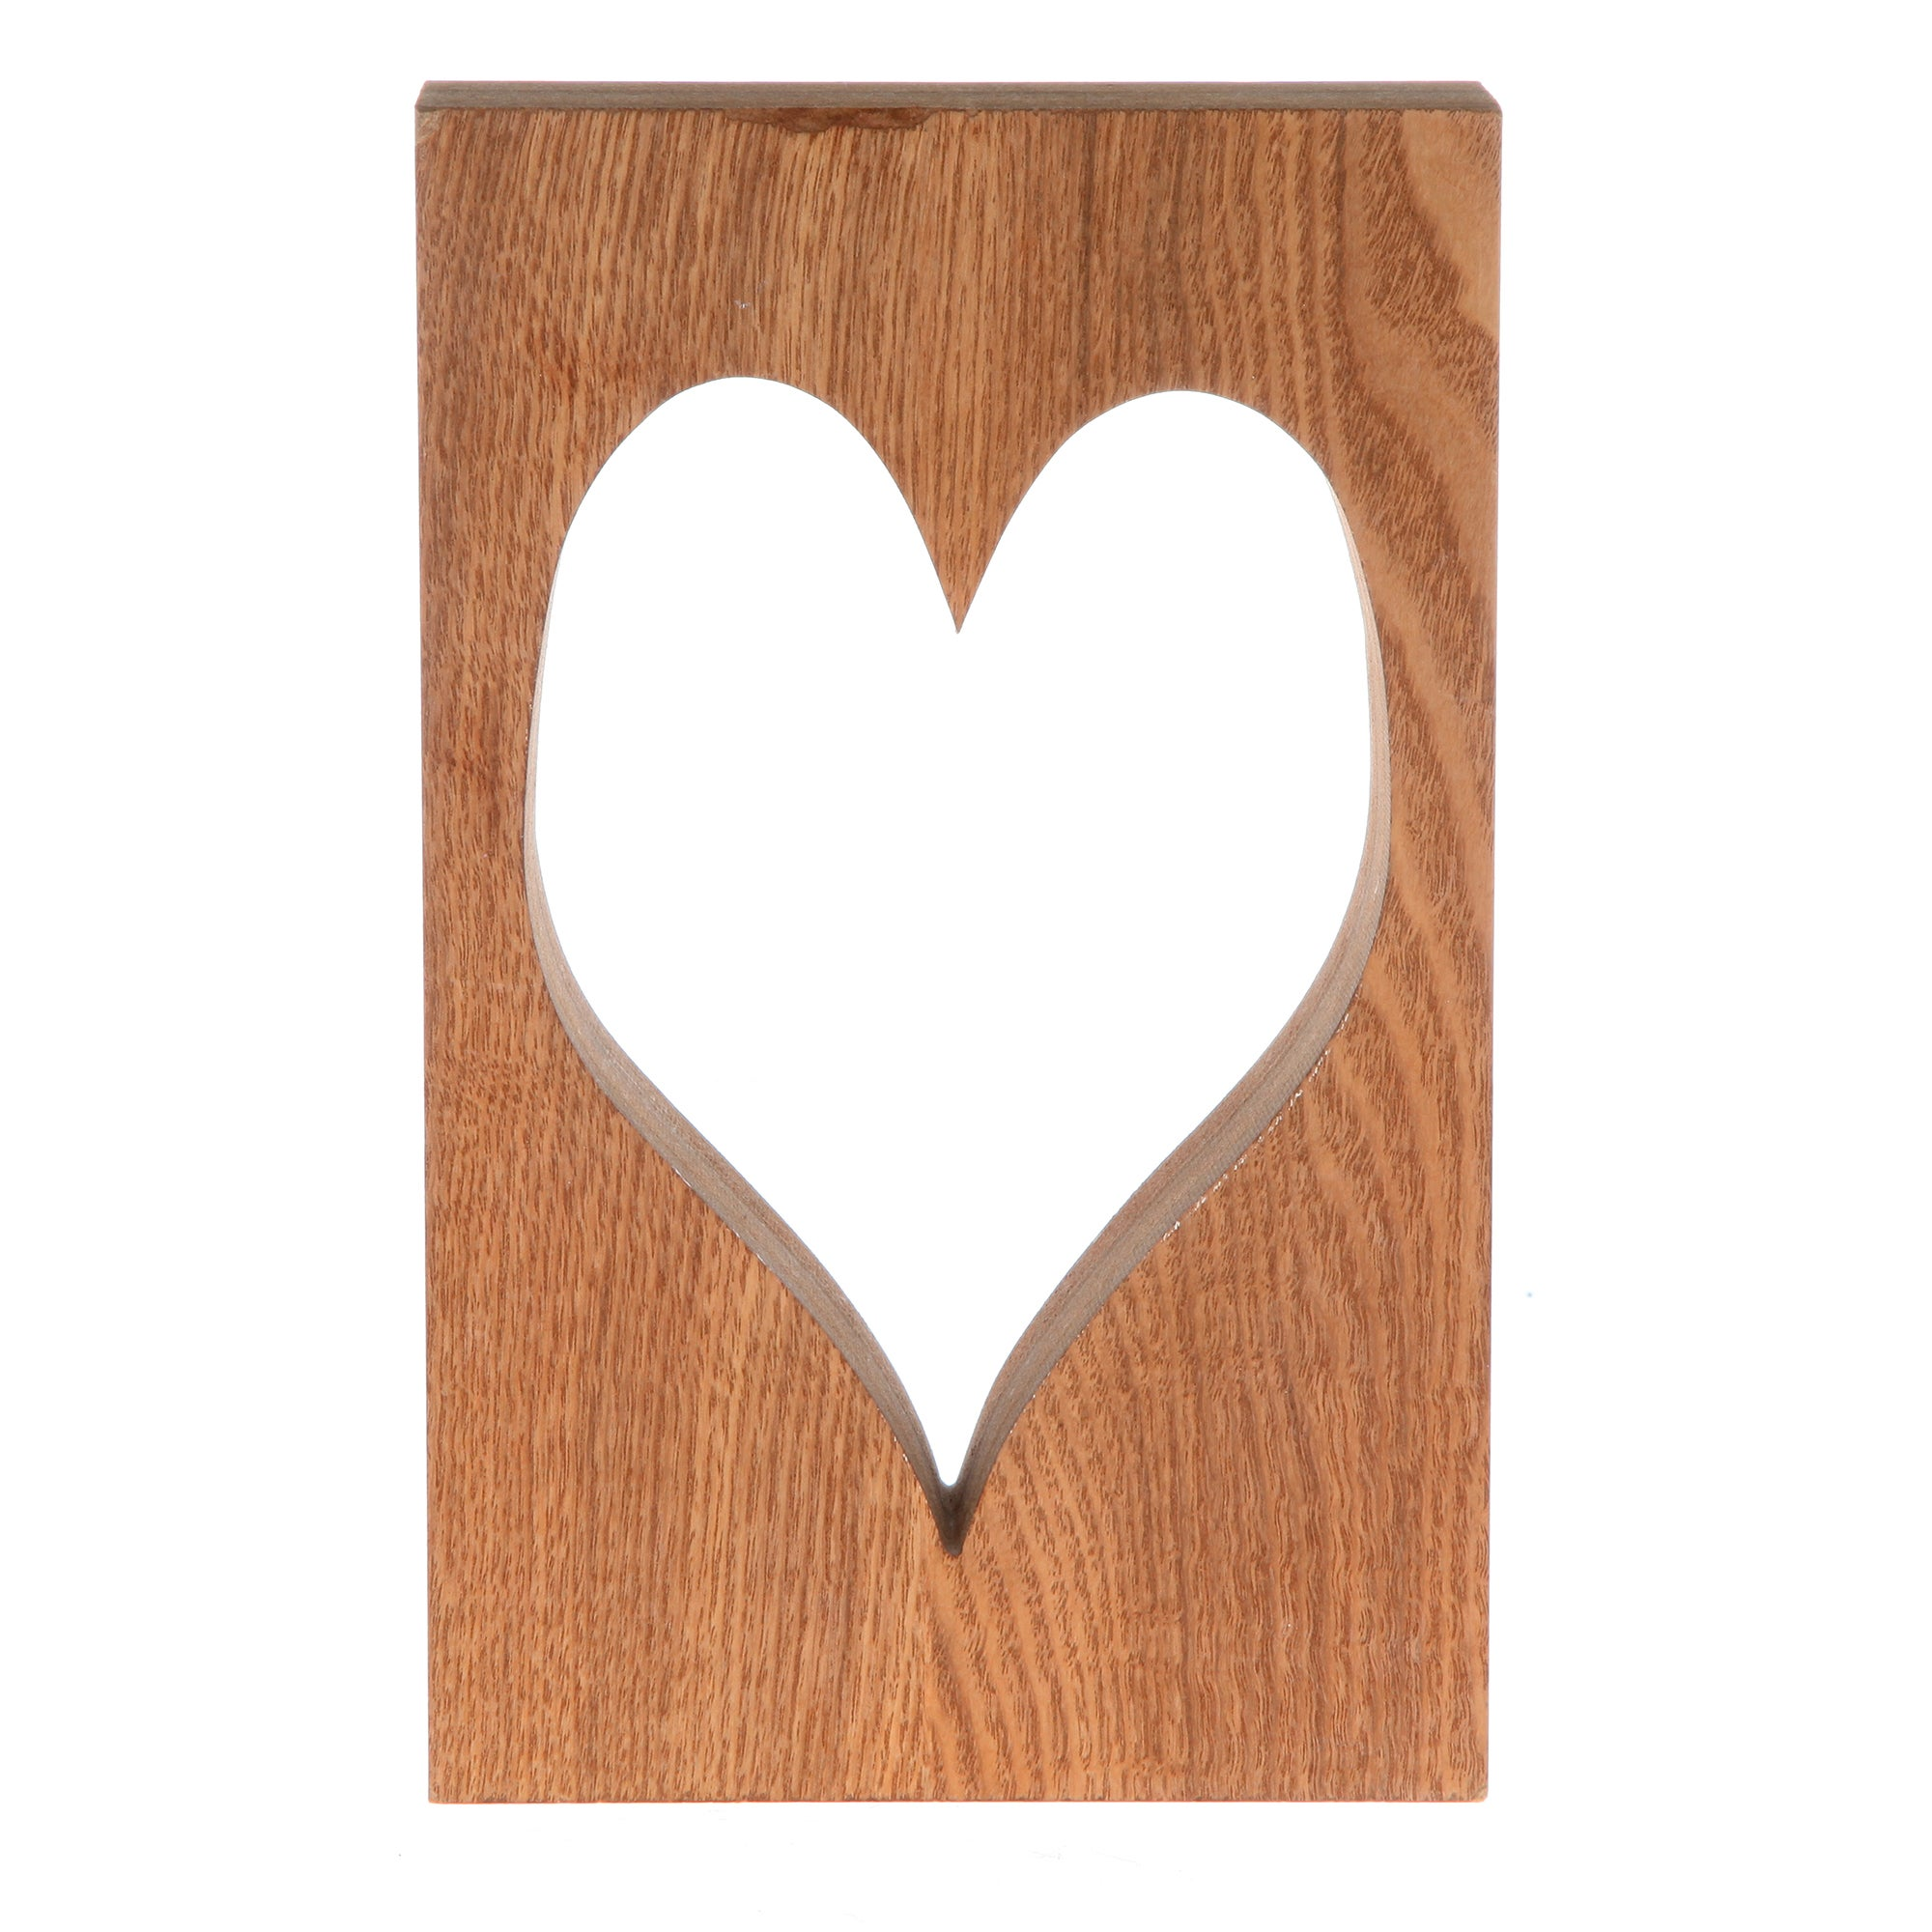 Wooden Block with Heart Cut Out